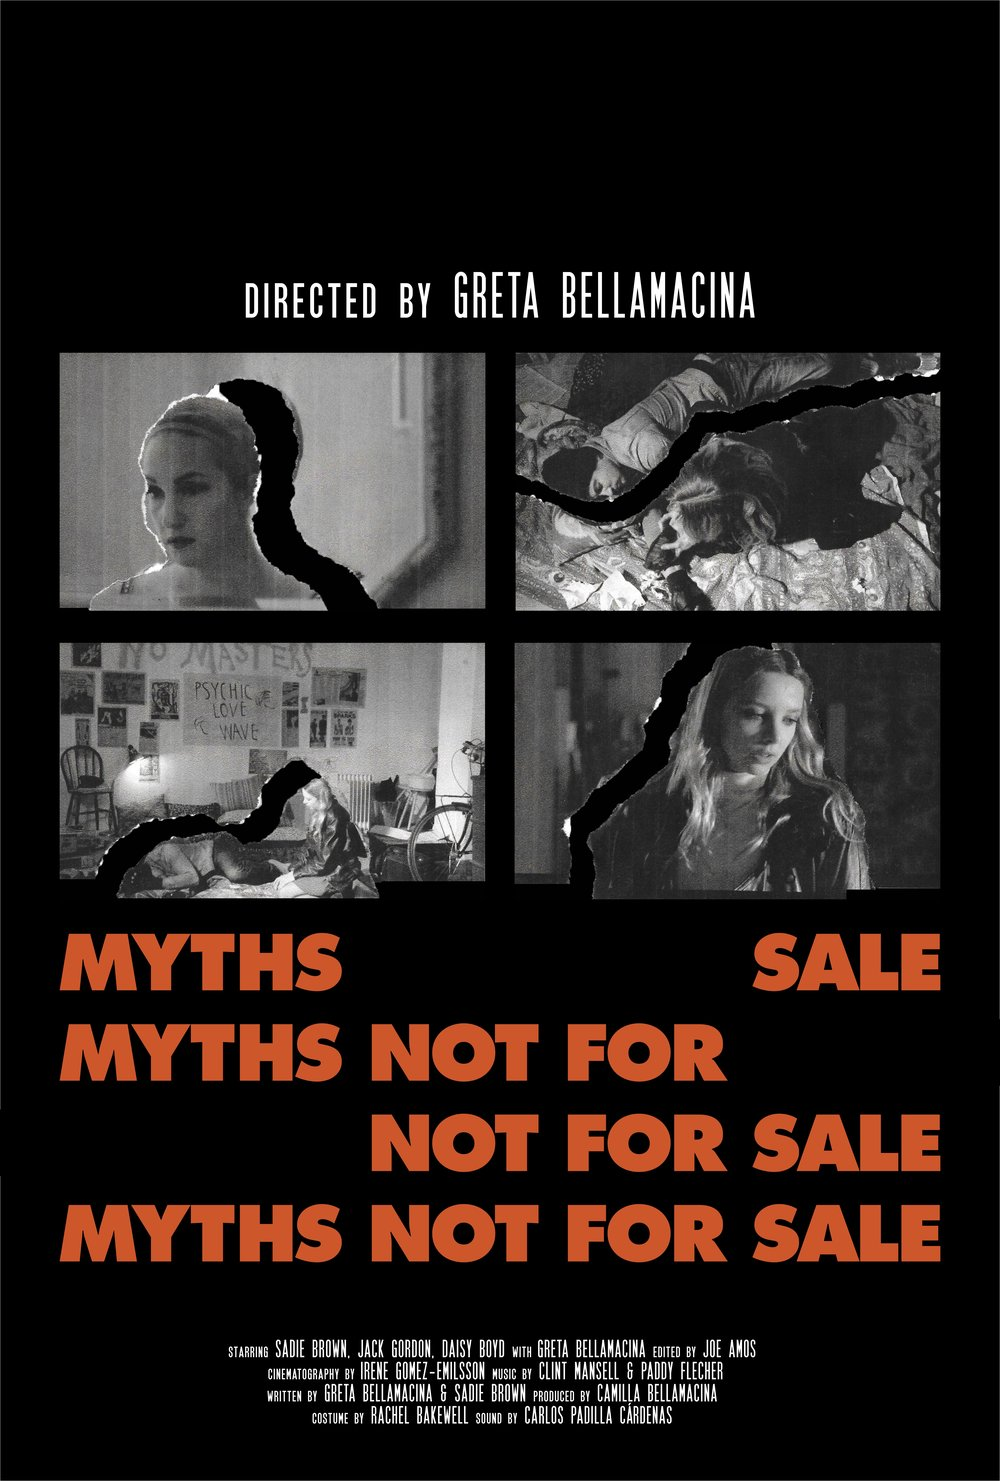 Myths not for sale—poster-5_1.jpg